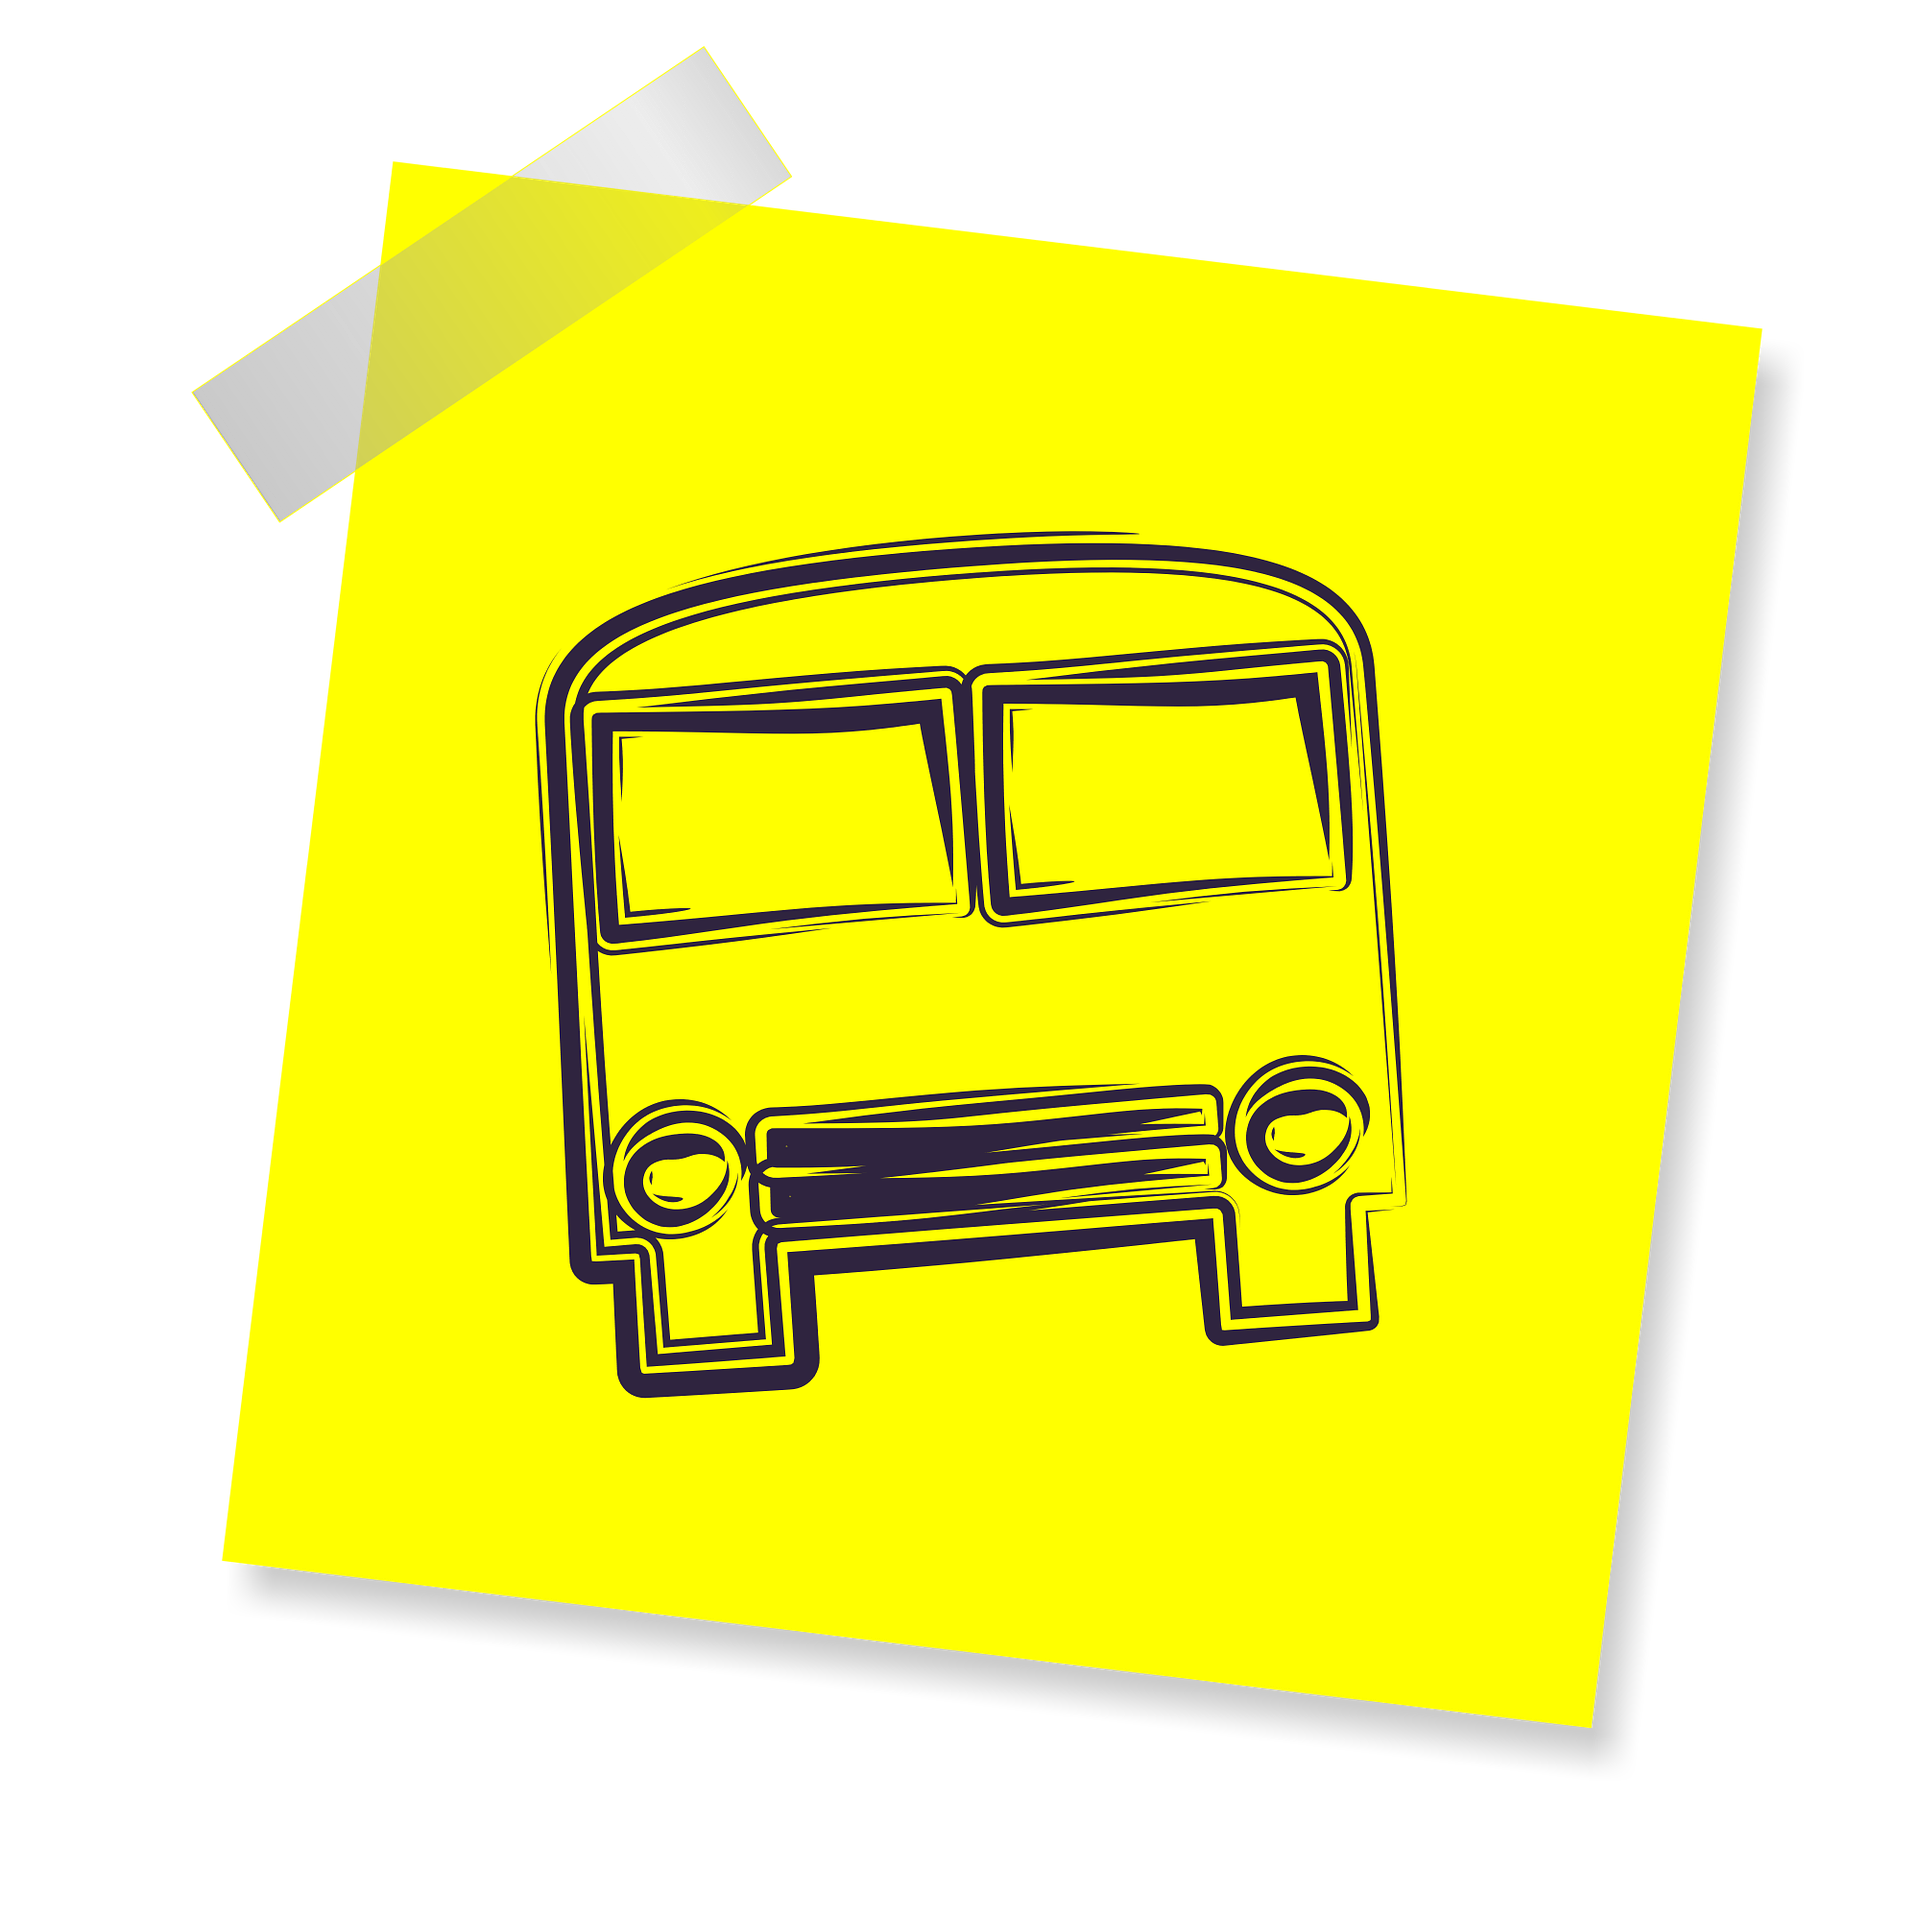 bus-1468141_1920png